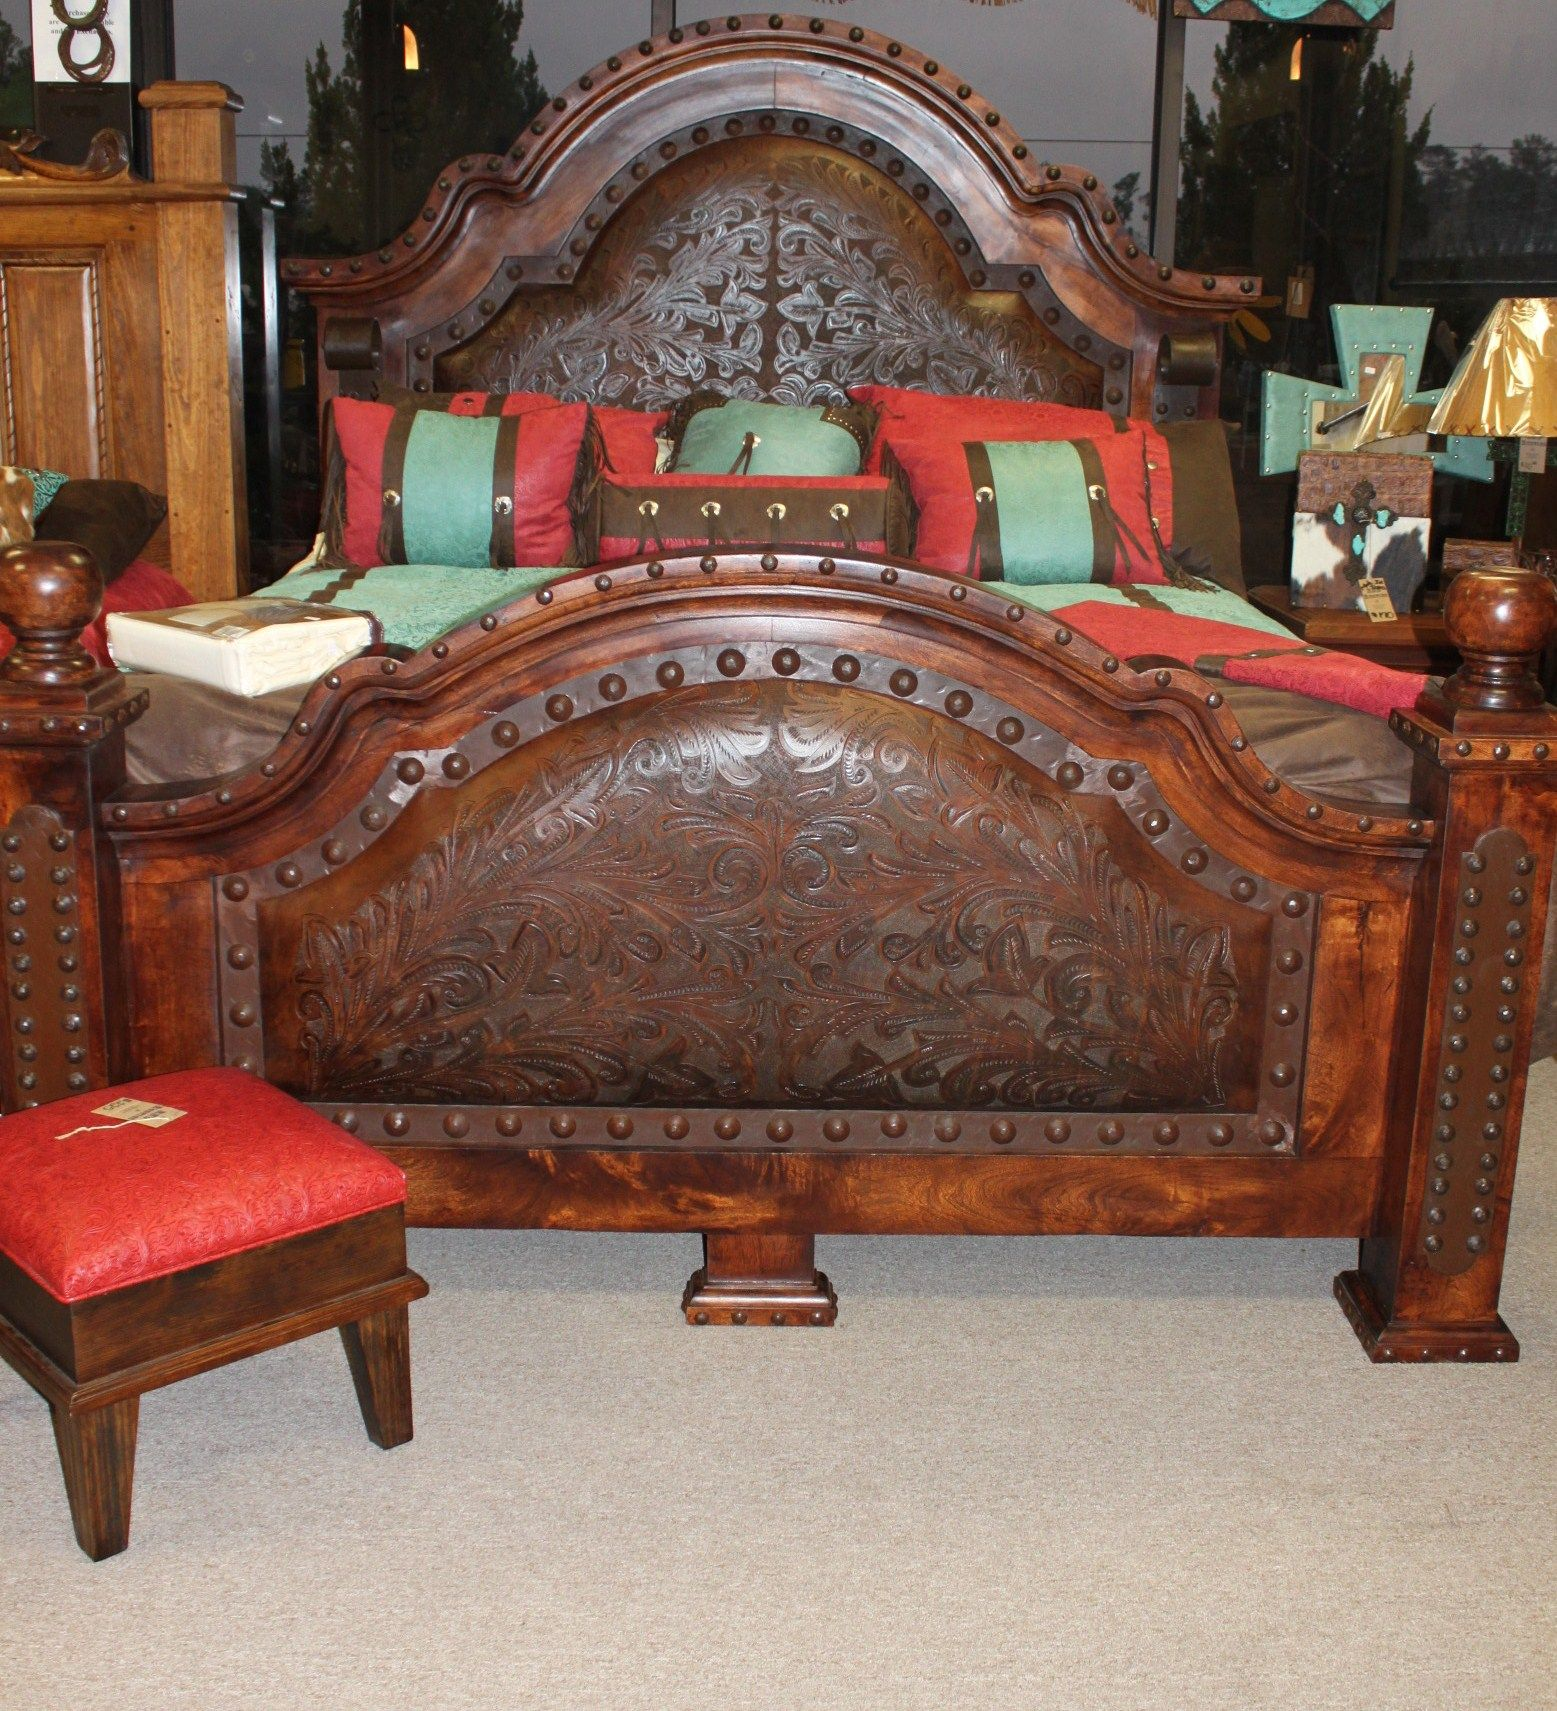 Mesquite Bed W Tooled Leather. Actually We Could Use That Tooled